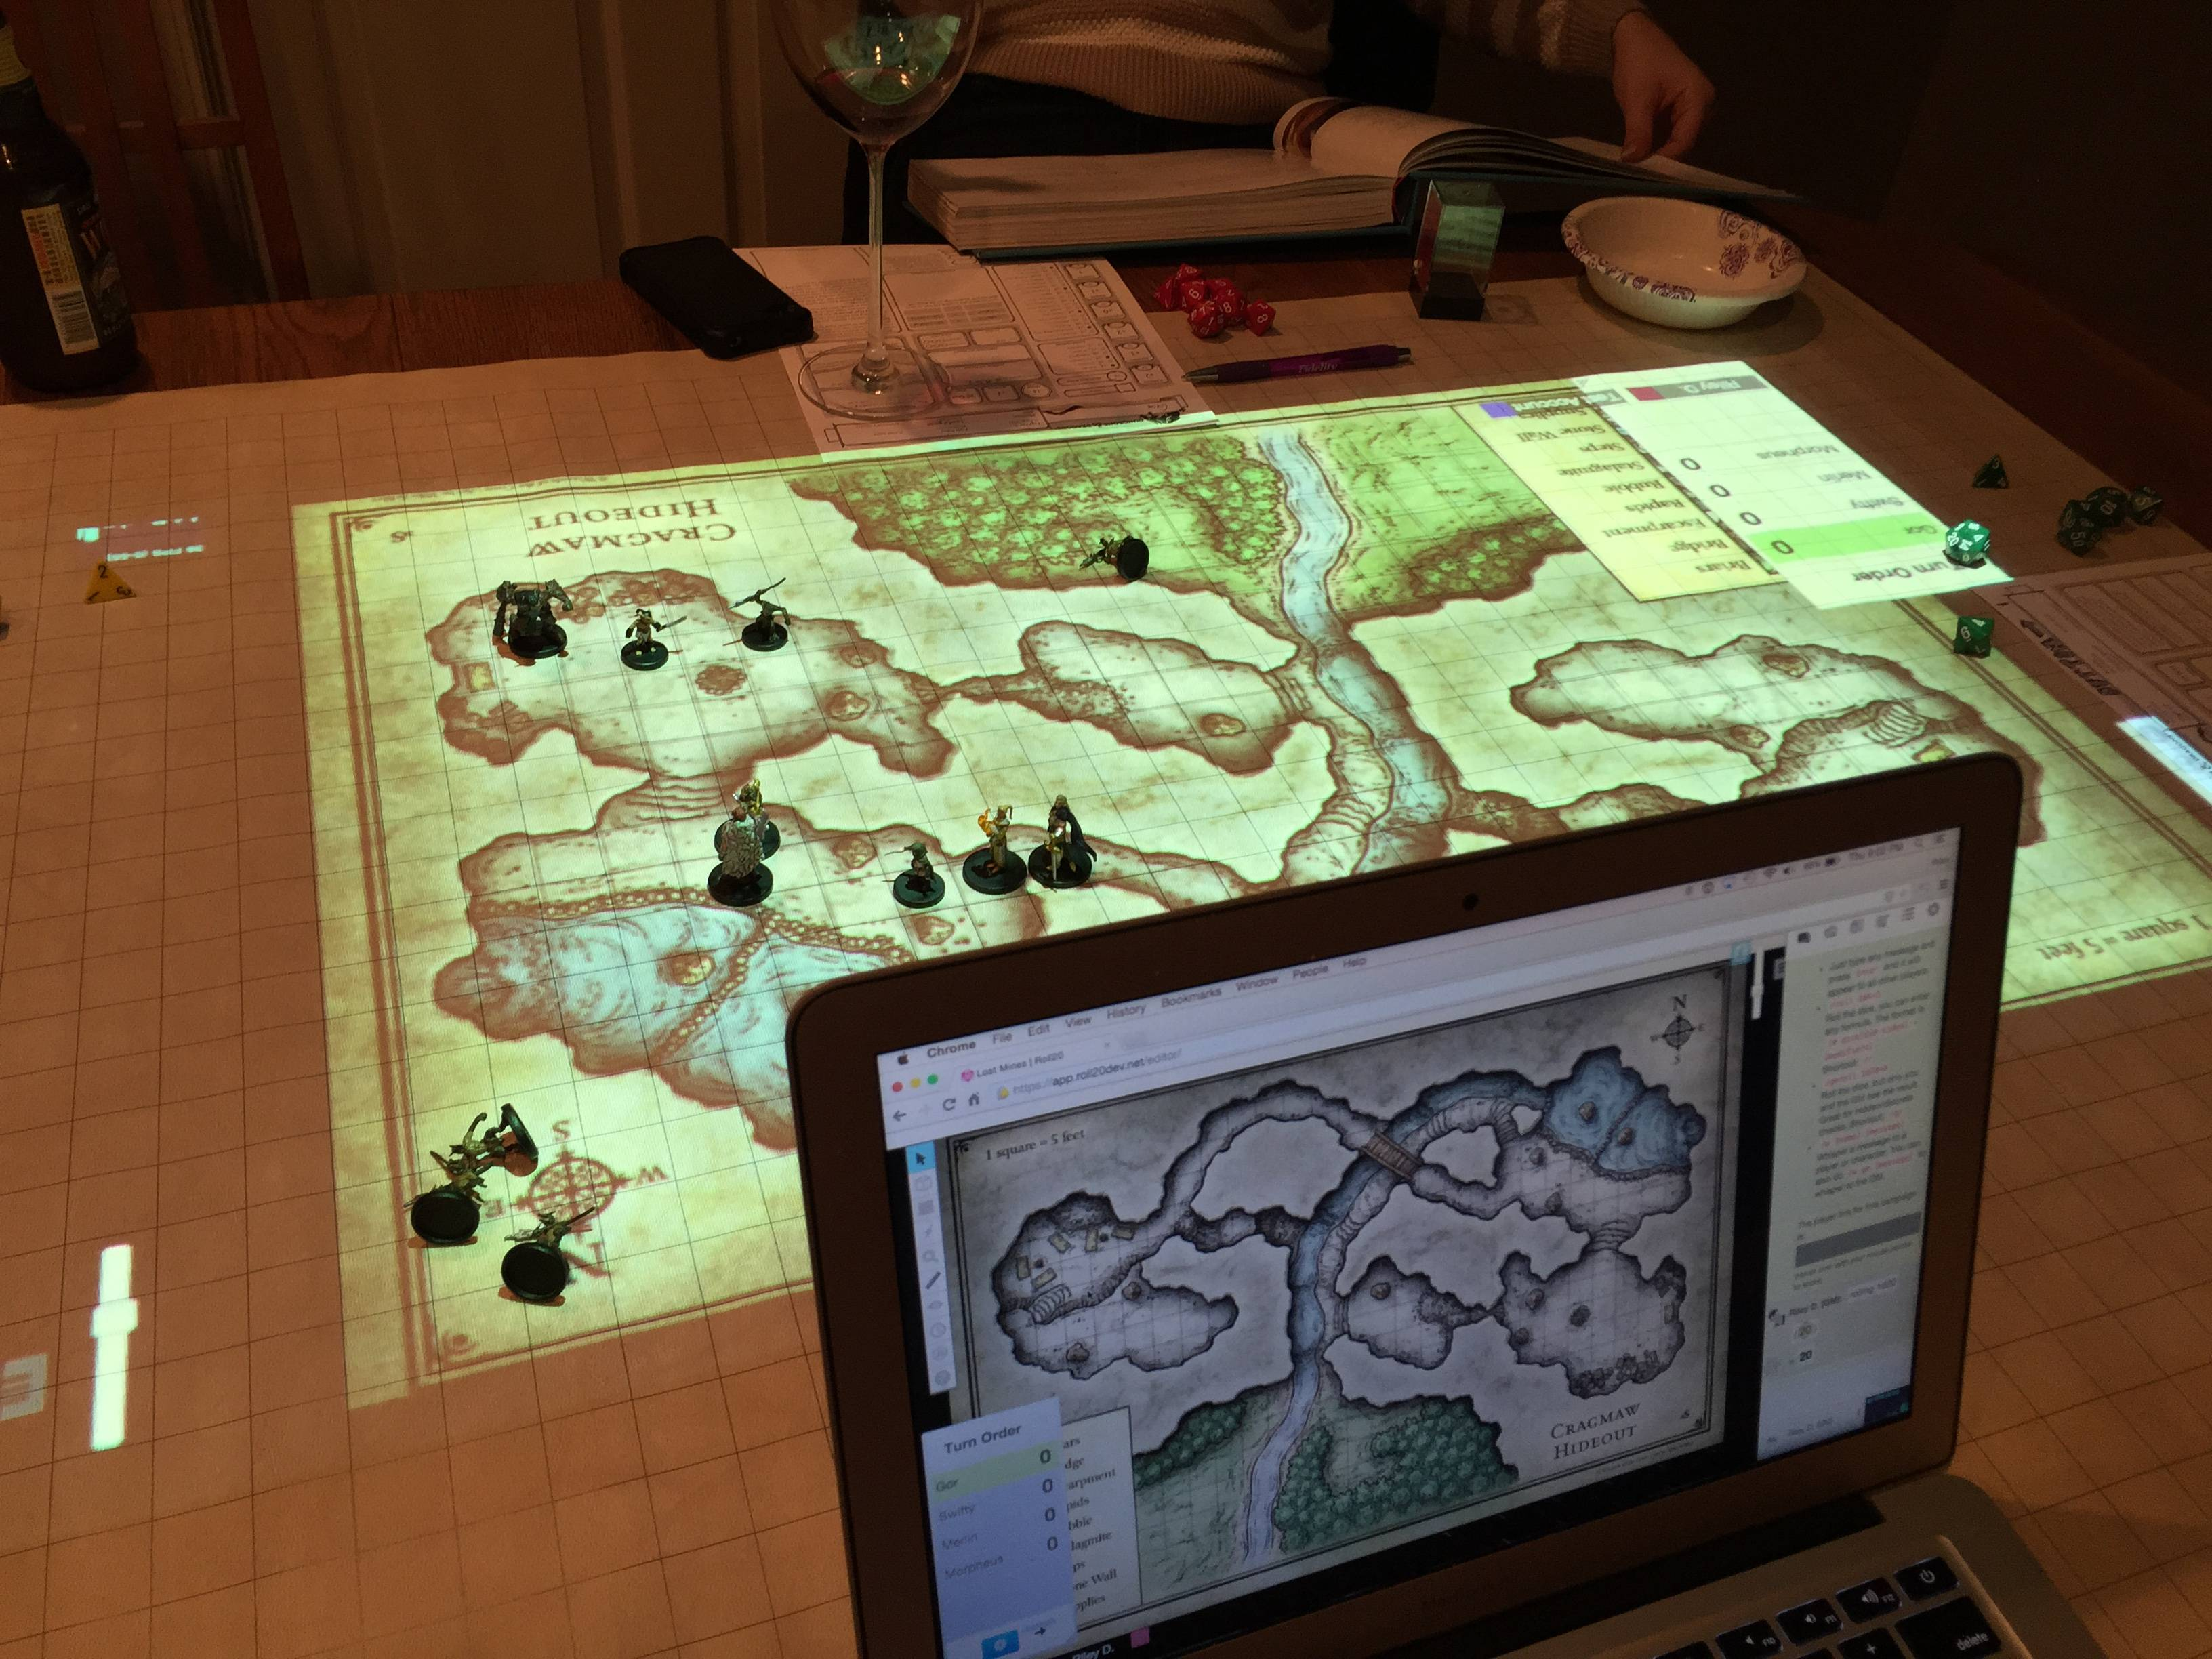 'Dungeons & Dragons' in AR Teased by Wizards of the Coast Digital Games Studio